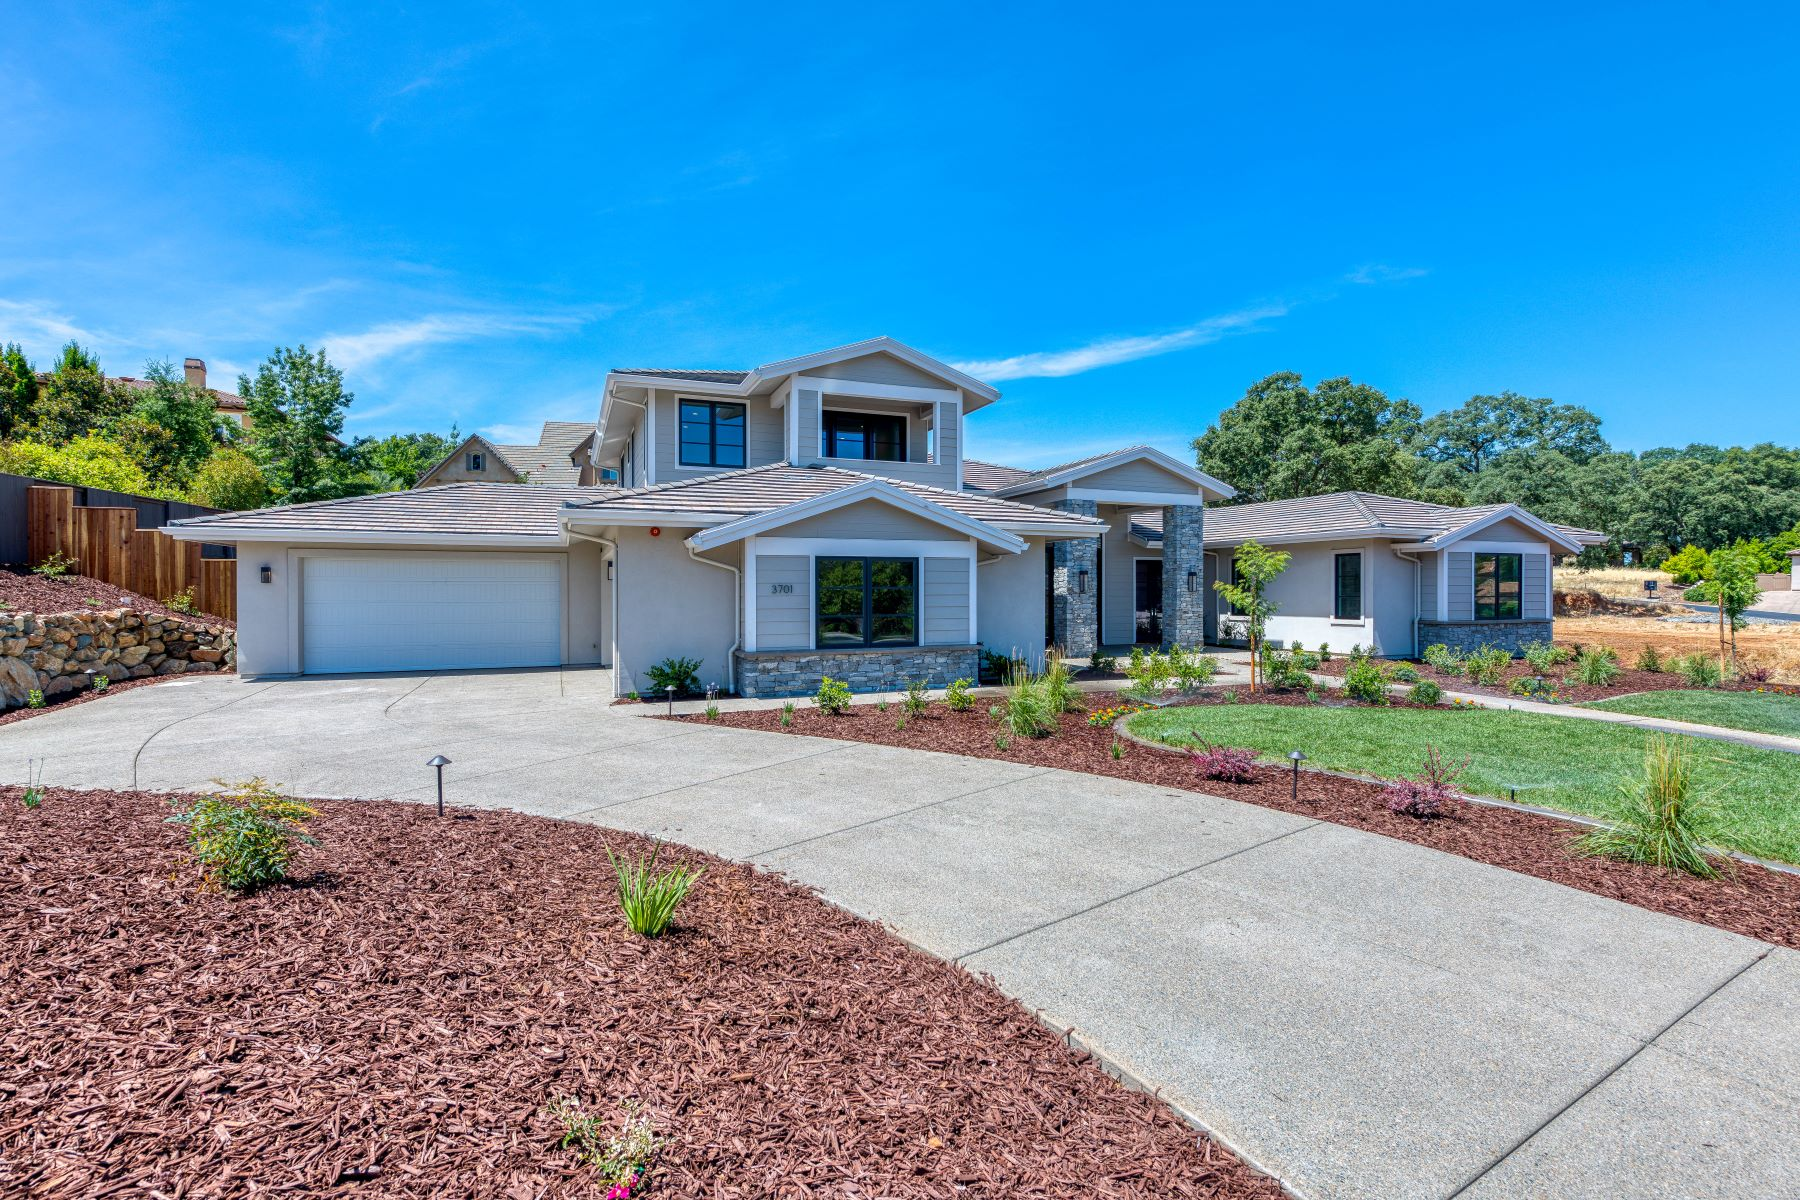 Single Family Homes for Active at 3701 Greenview Dr, El Dorado Hills, CA 95762 3701 Greenview Dr El Dorado Hills, California 95762 United States